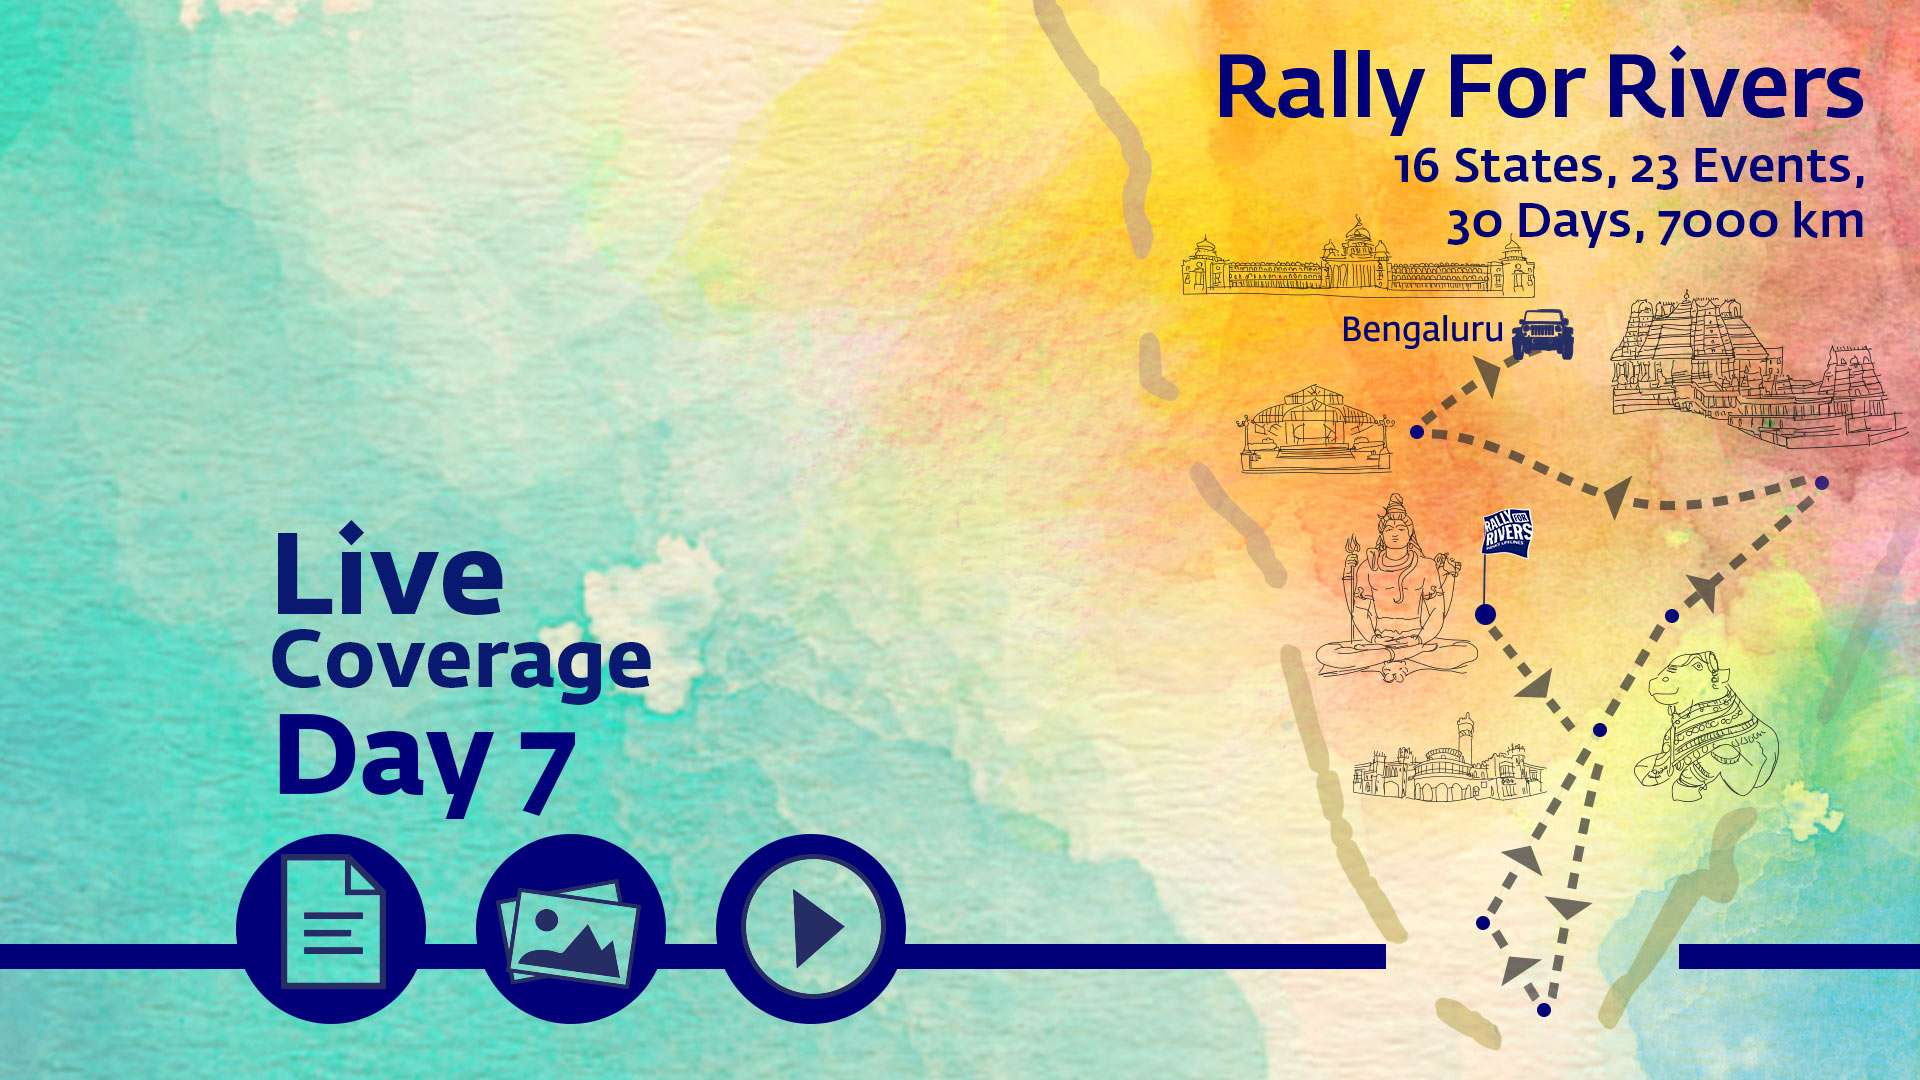 Live Coverage Day 7 - Bangalore